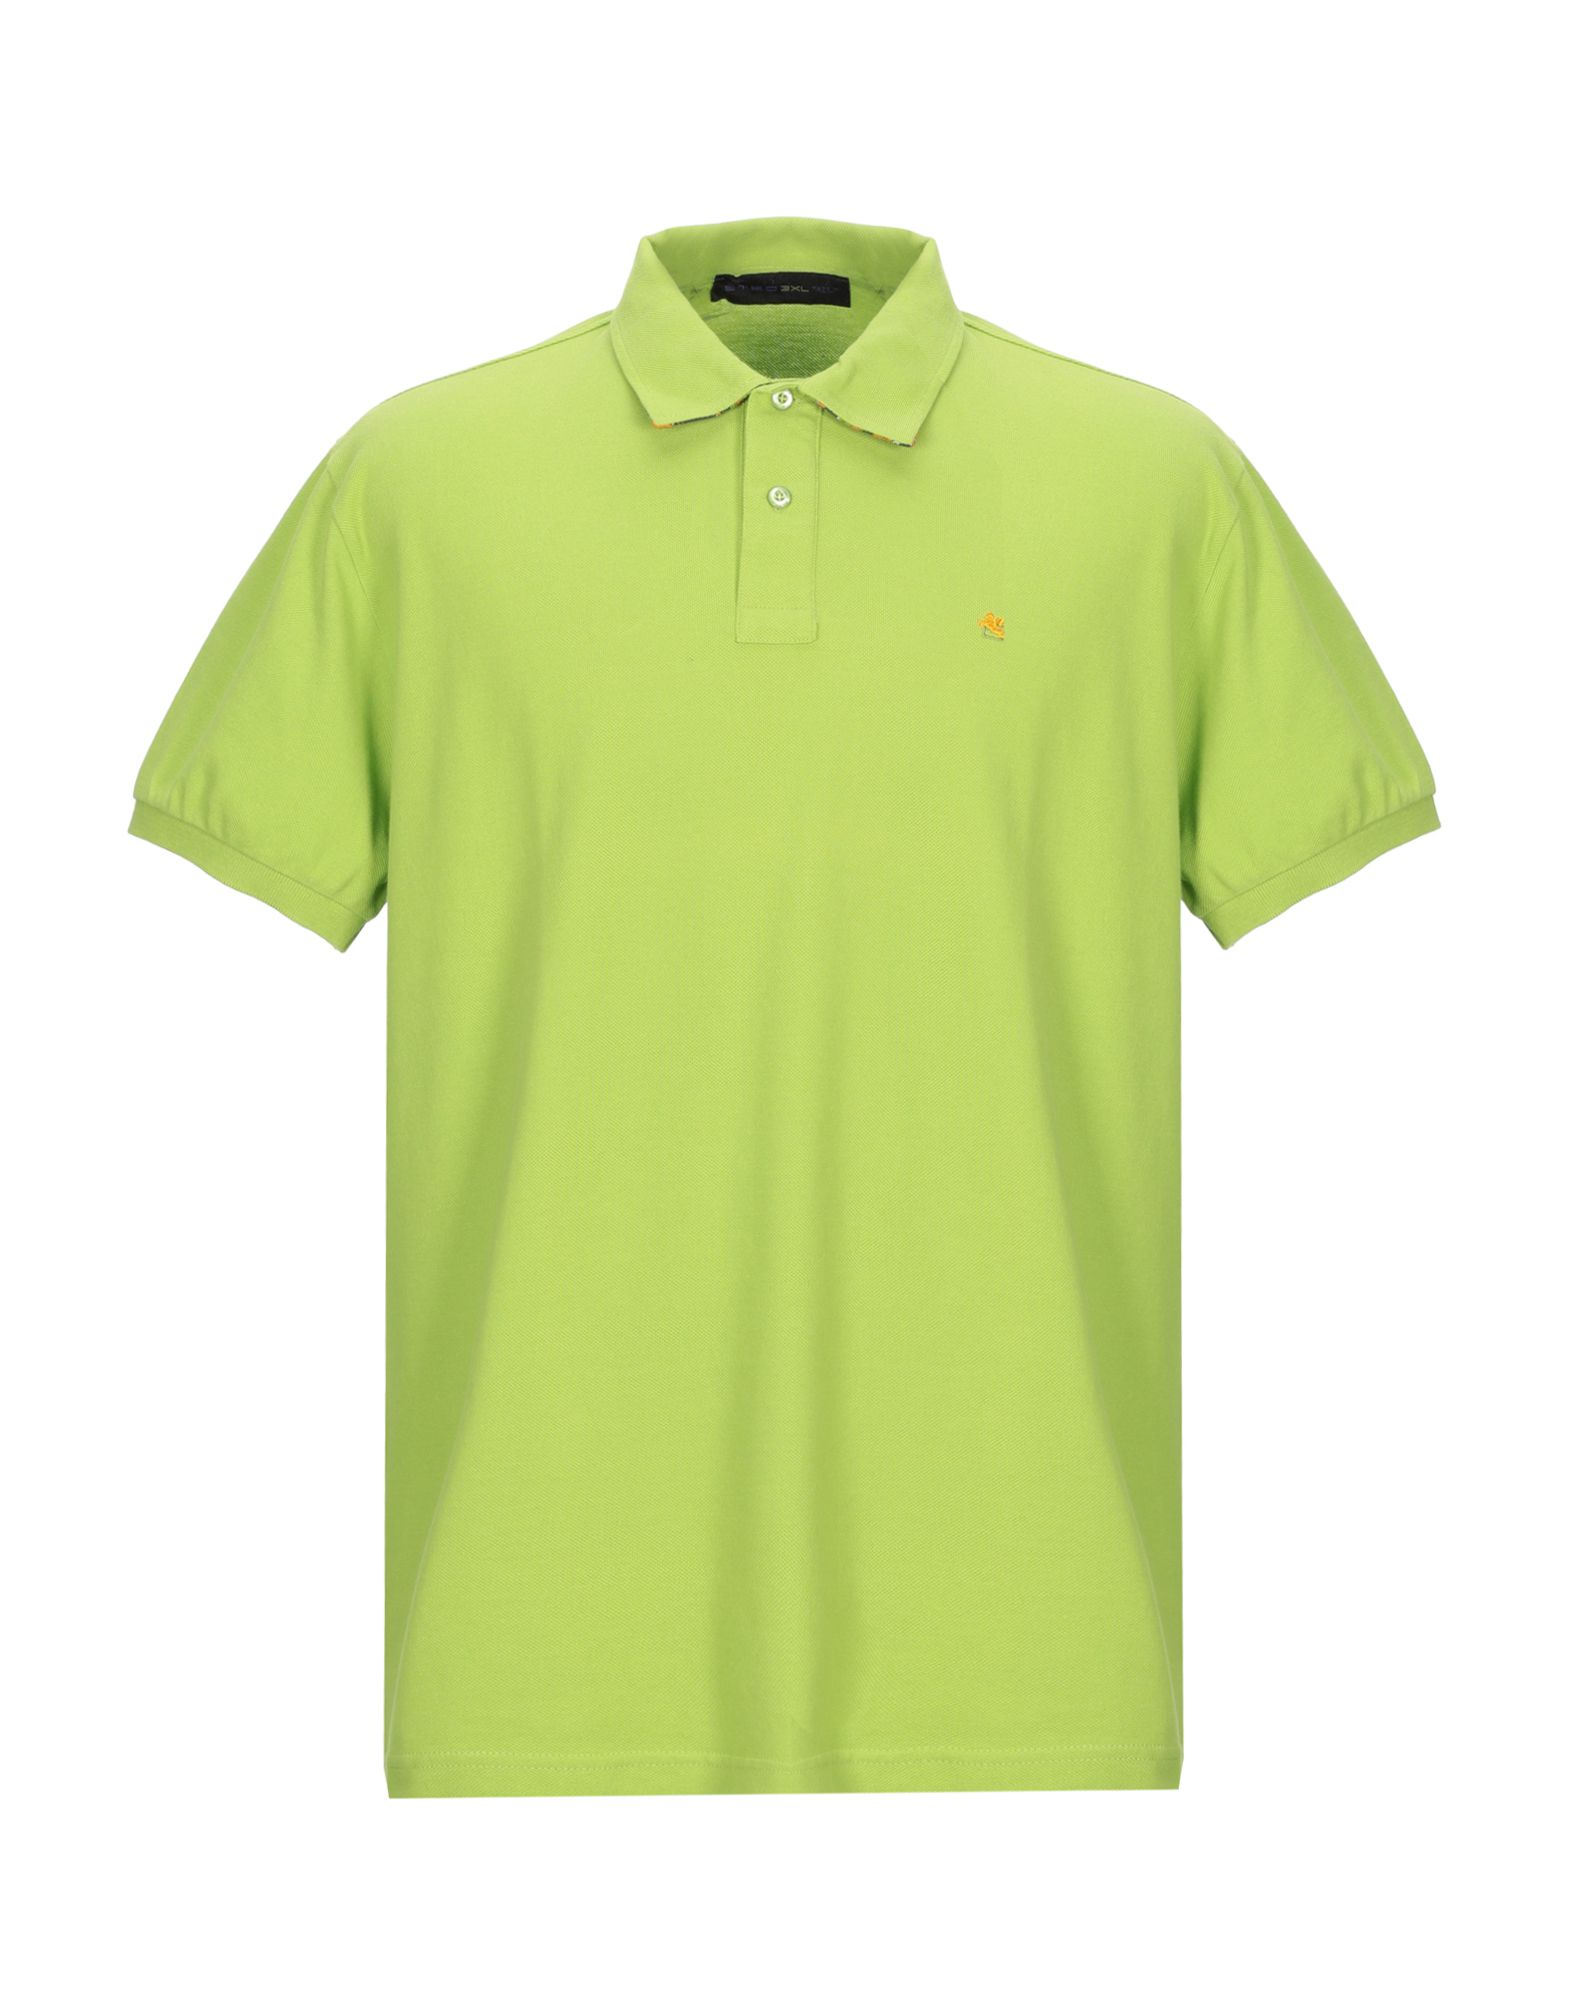 981bb35e4ab8c Buy etro polos for men - Best men's etro polos shop - Cools.com